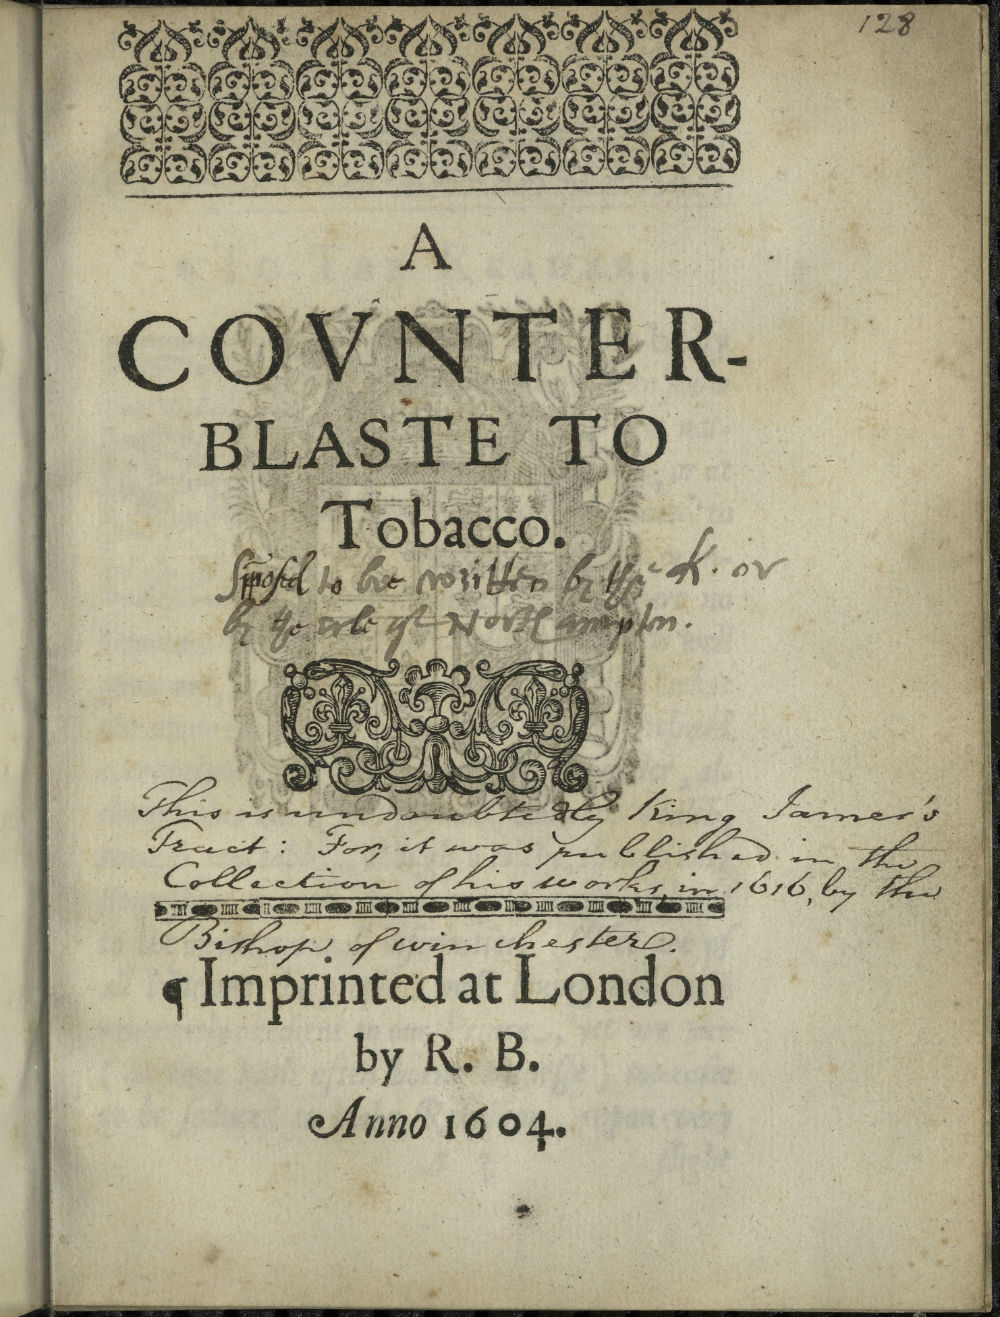 A Very Regal Rejection of Tobacco